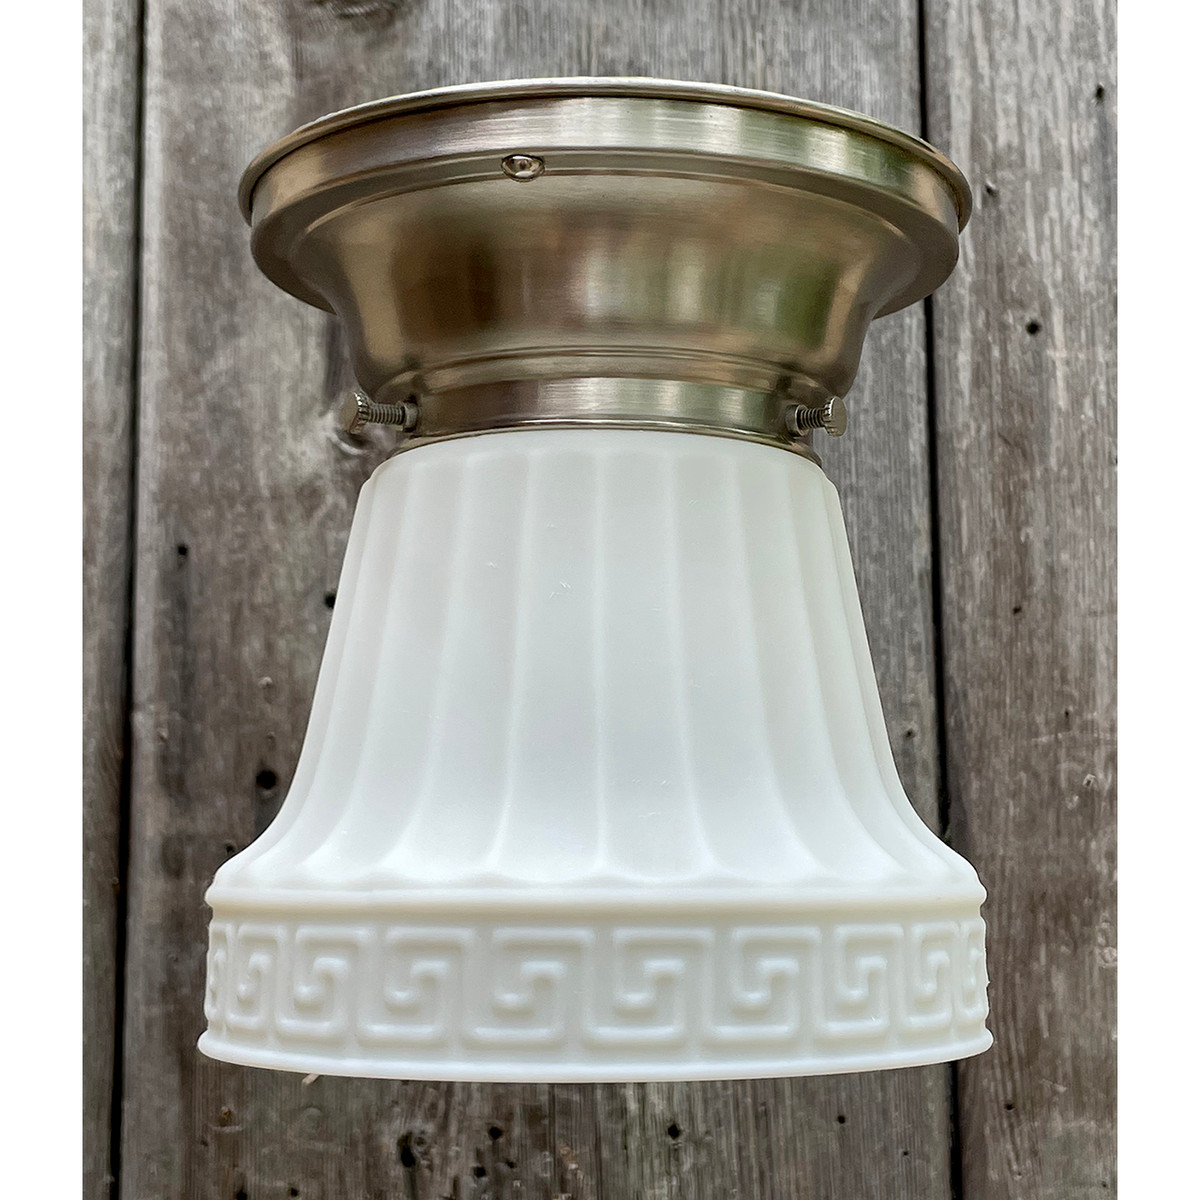 L21166 - Antique Neoclassic Bell Shade on Custom Nickel Fitter